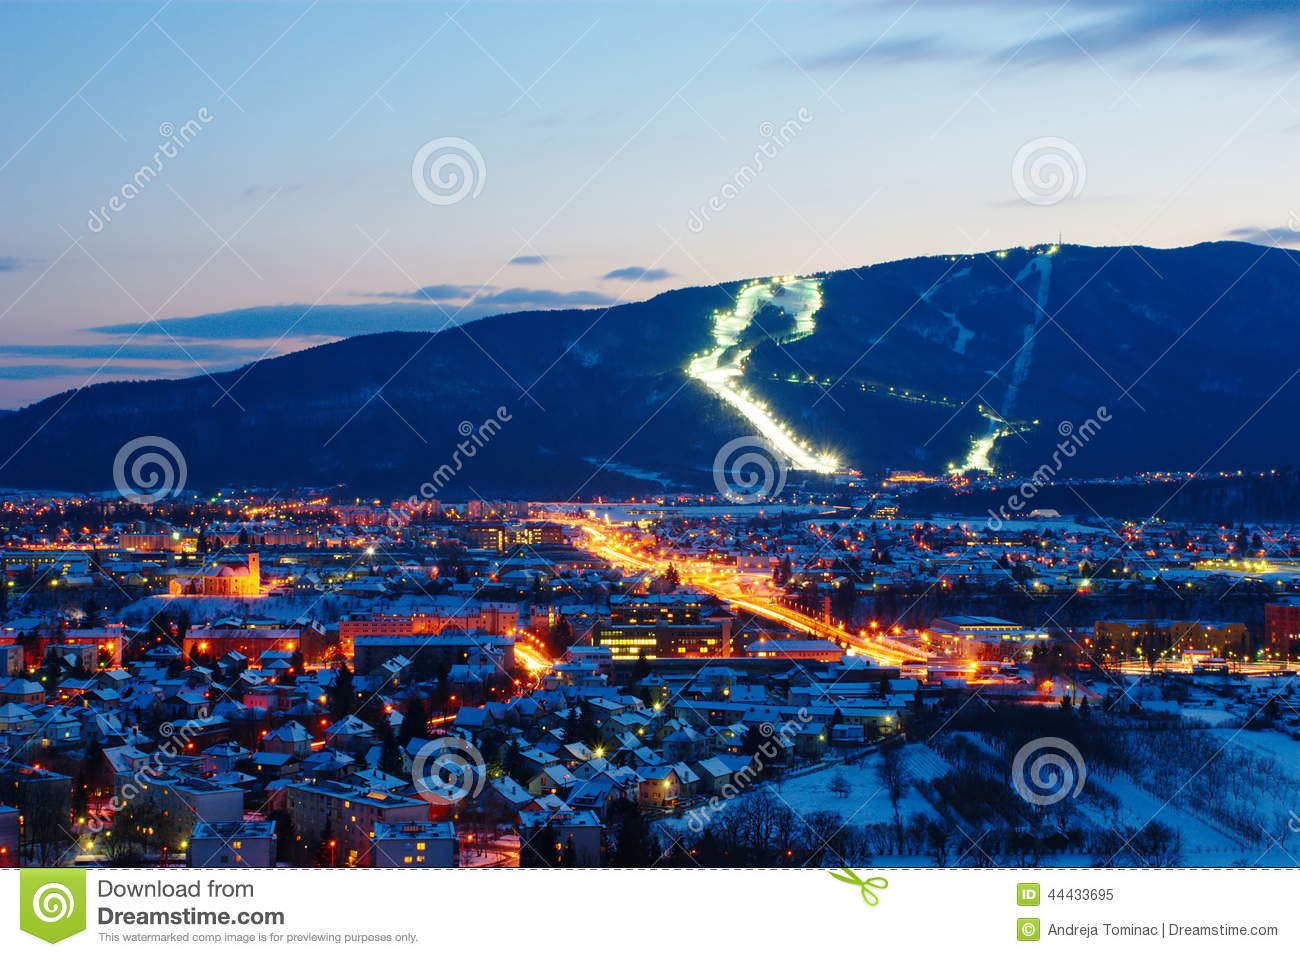 Pohorje And Maribor In Winter, Slovenia Stock Photo - Image: 44433695